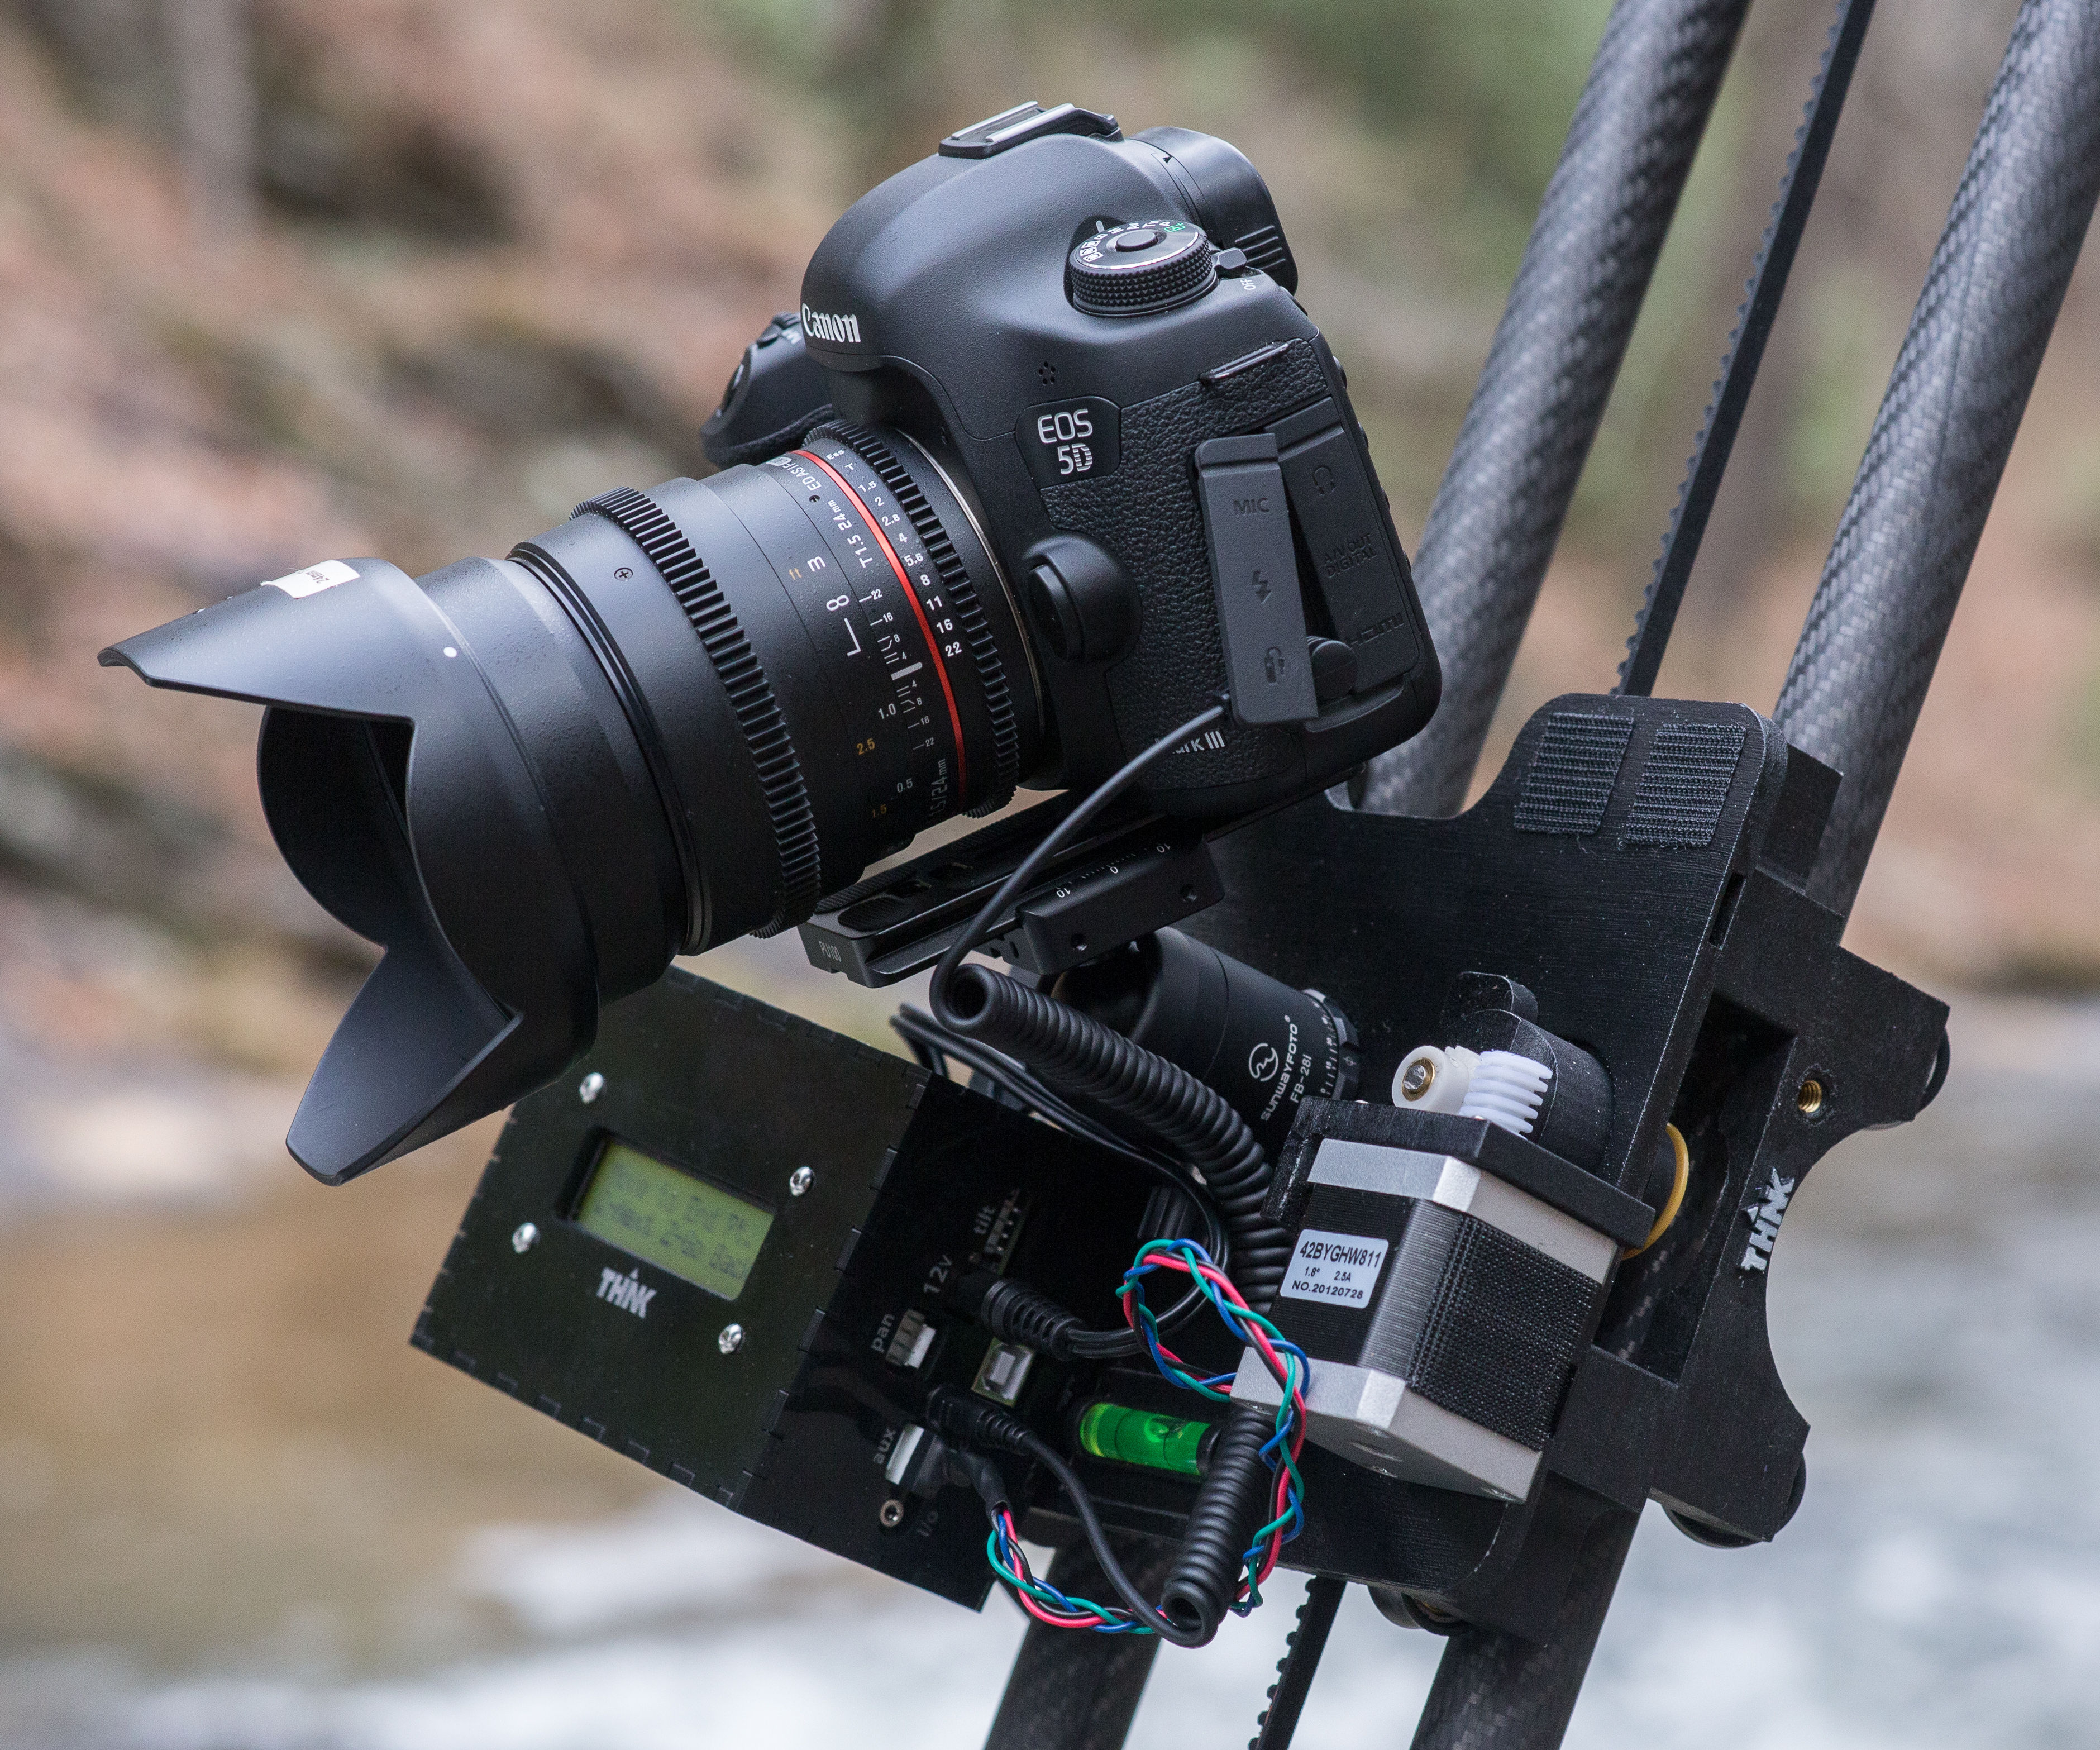 3D Printed, Ultralight, 3-axis Modular Time-Lapse Motion Control System